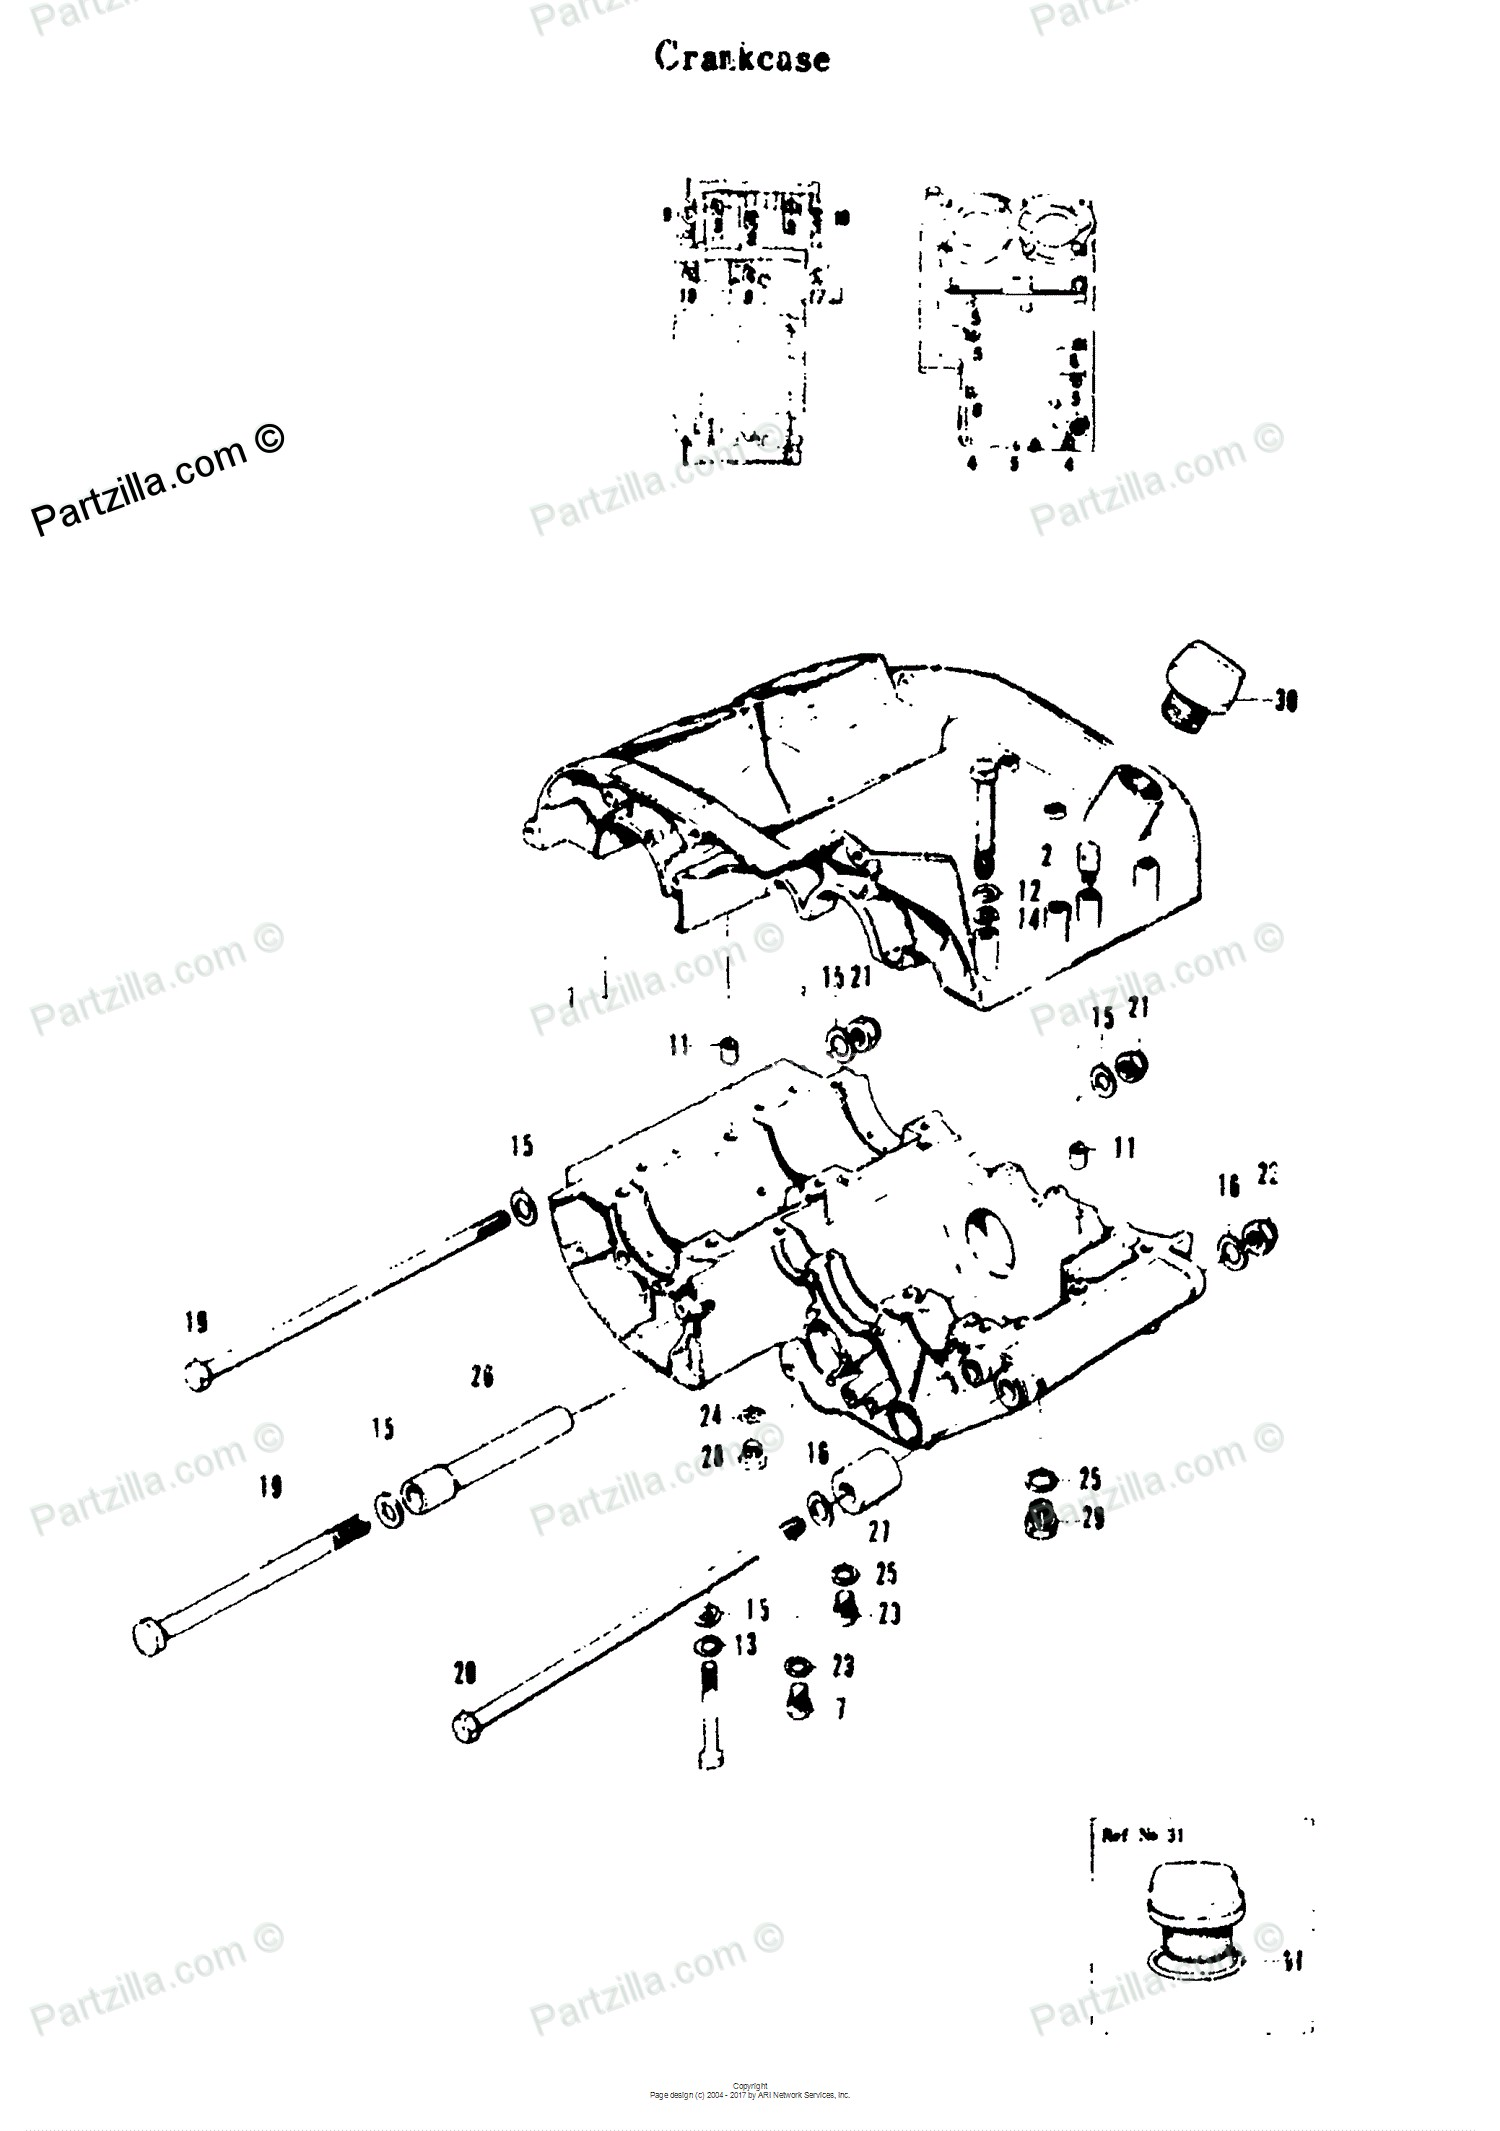 Motorcycle Engine Parts Diagram Suzuki 1969 Oem Together With For Crankcase Partzilla Of